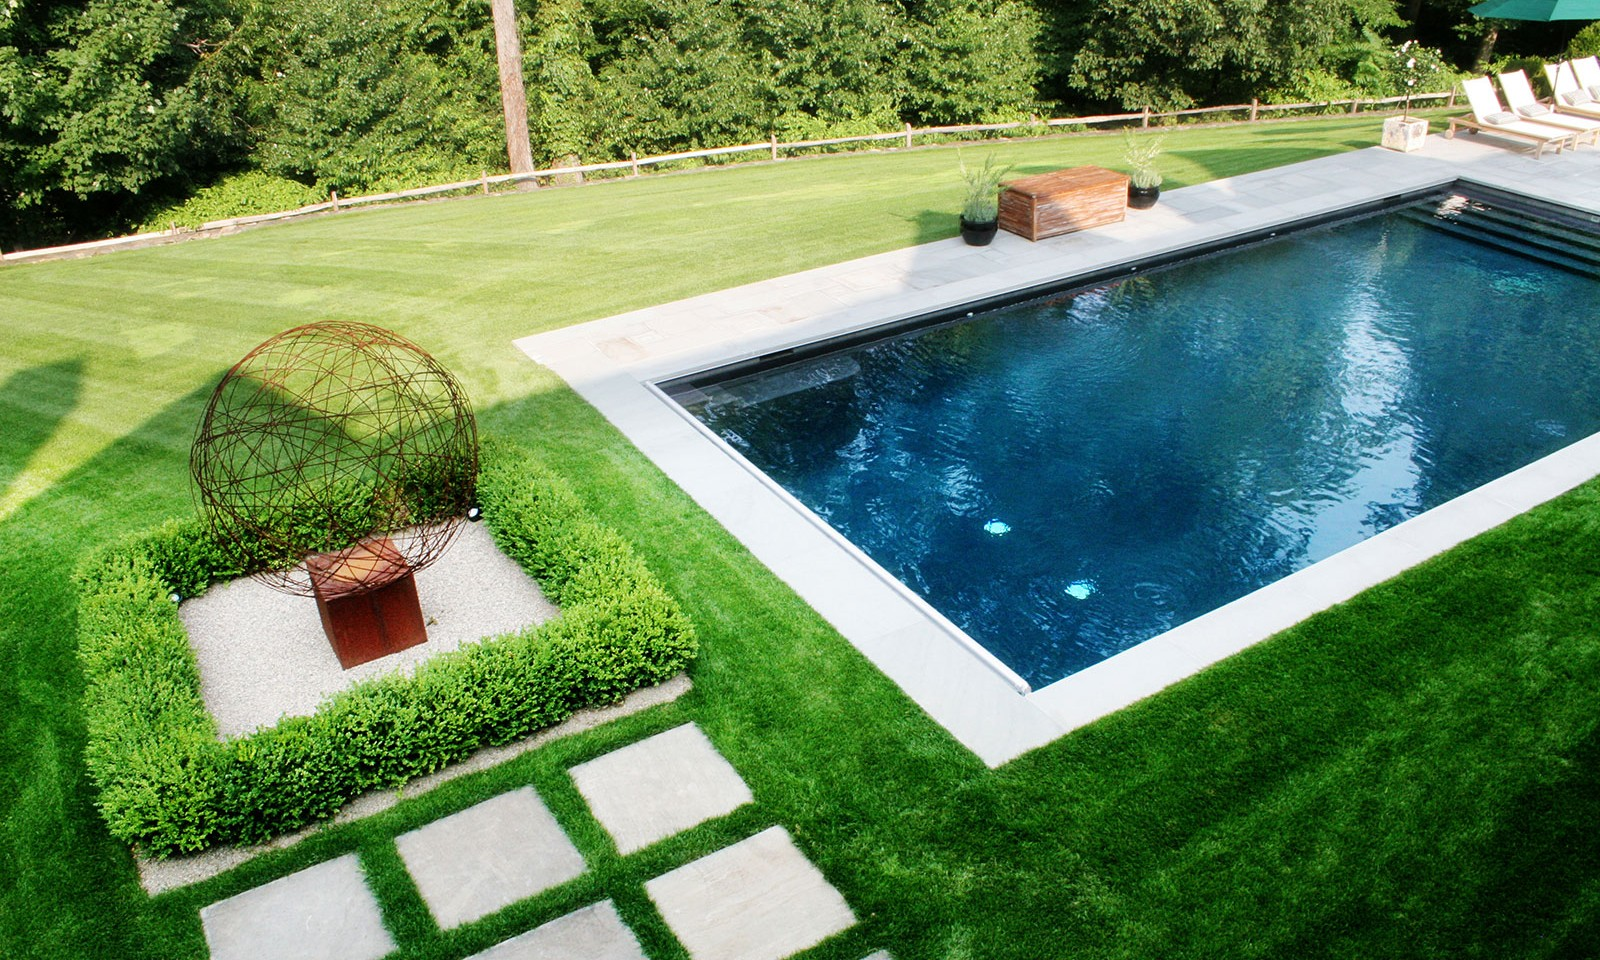 Outdoor Living Space Design Projects: Step-by-Step